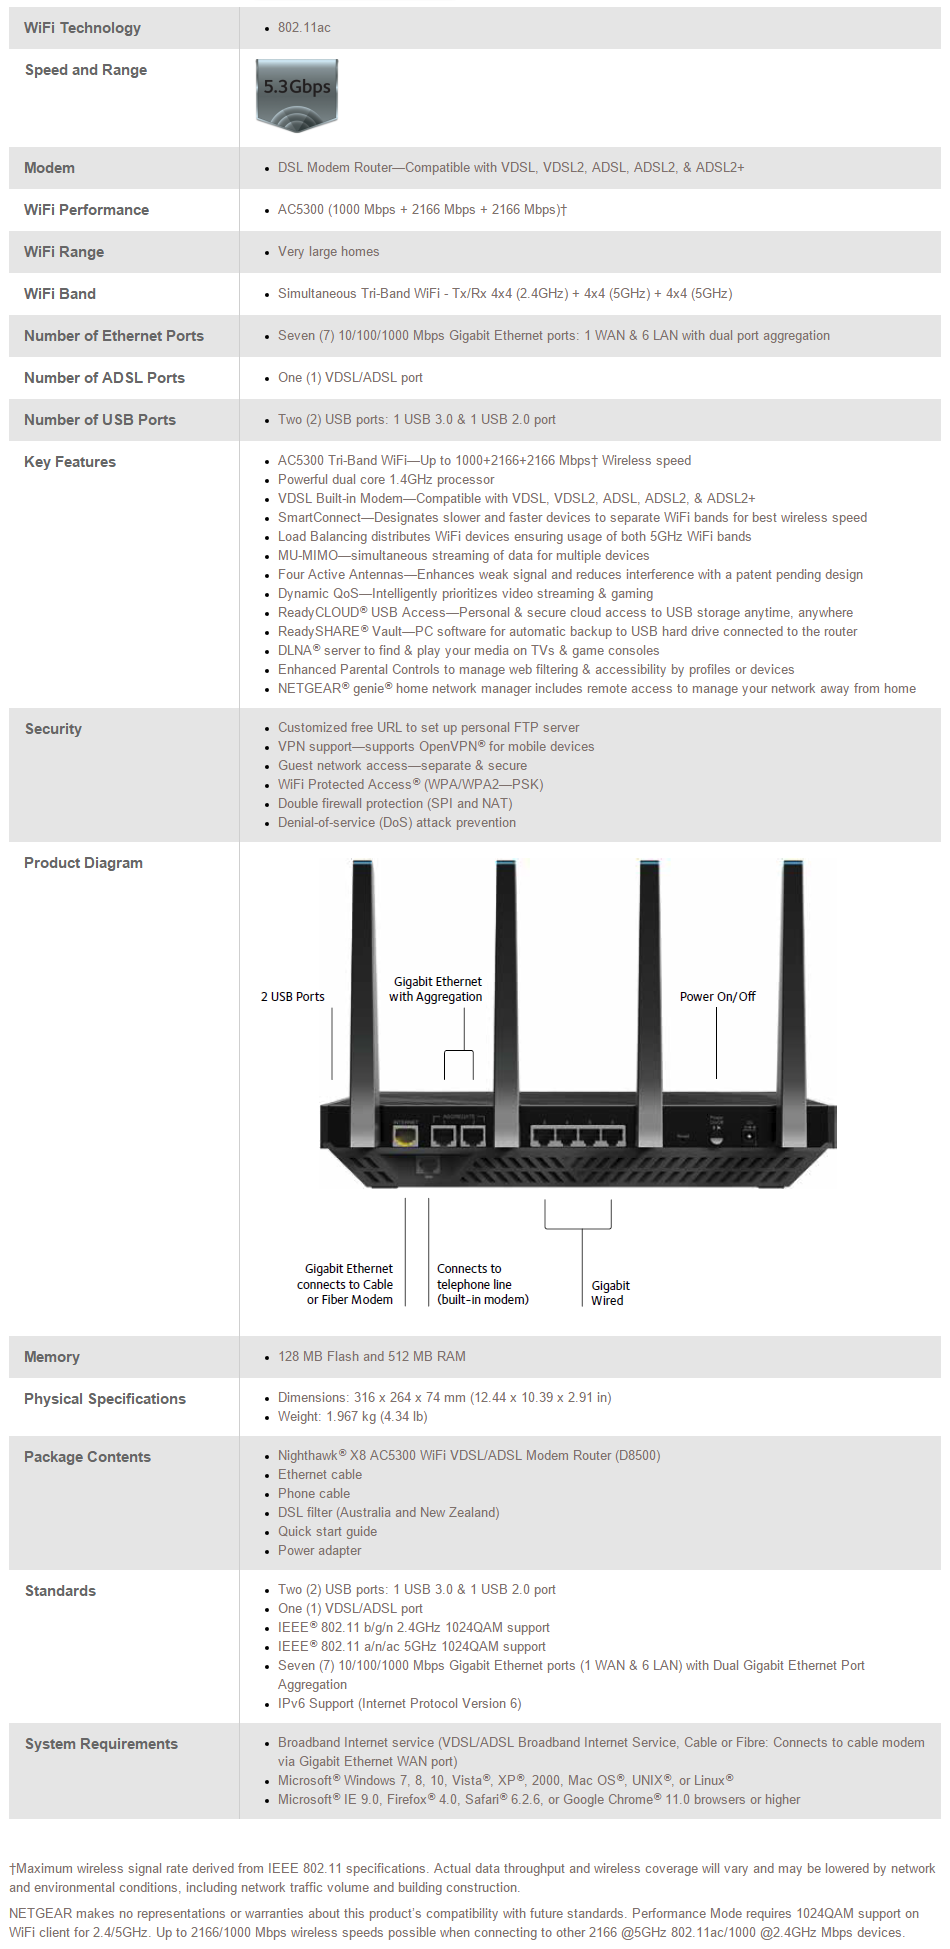 Netgear D8500 Nighthawk Ac5300 Tri Band Wifi Vdsl Adsl Modem Router Wiring Diagram Can Combine To Double Maximum Wired Speeds Includes Auto Detection For Universal Dsl Support Compatible With Vdsl2 Adsl2 And